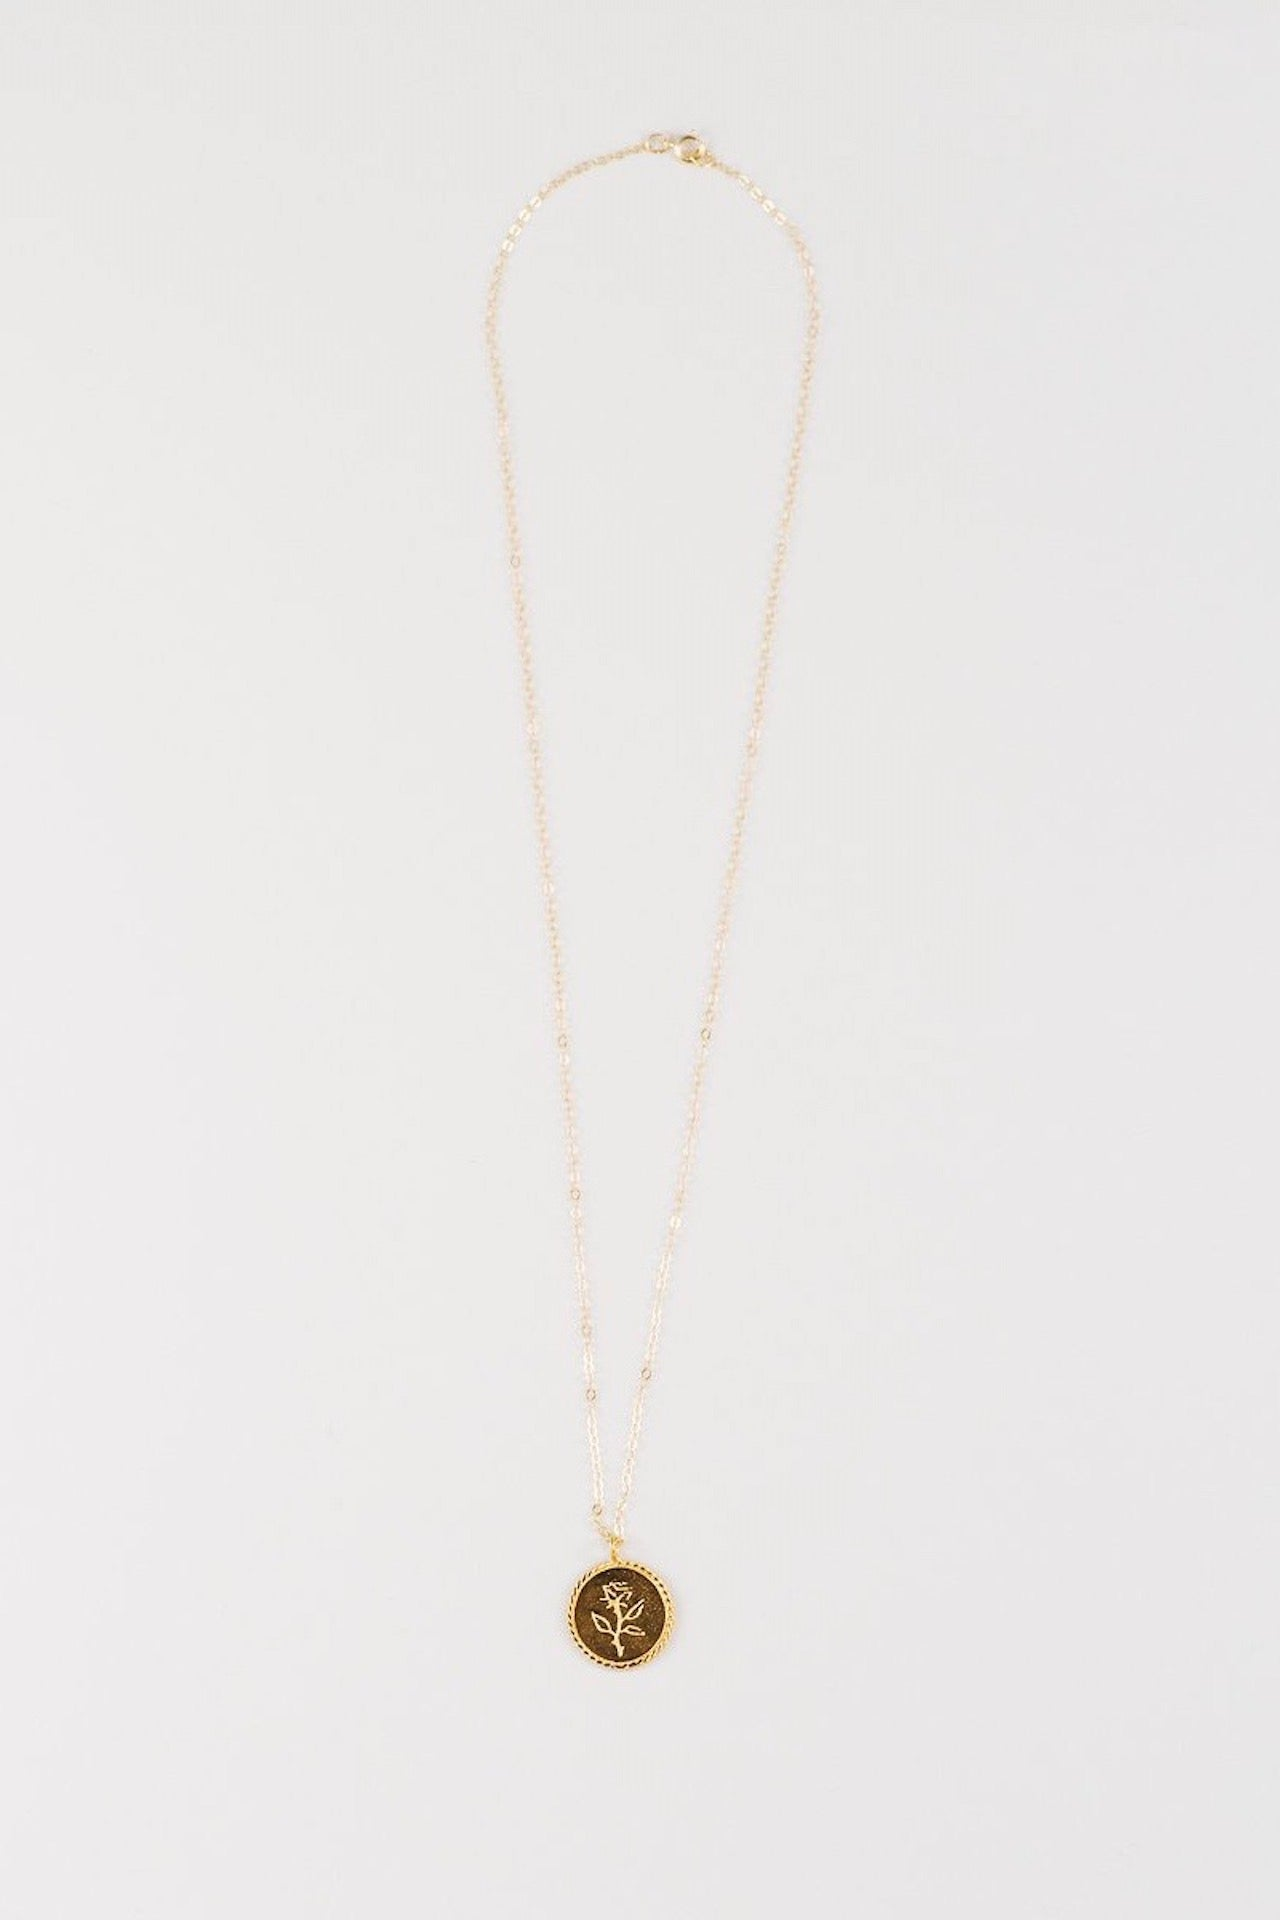 ROSECOIN Pendant and Chain- Gold